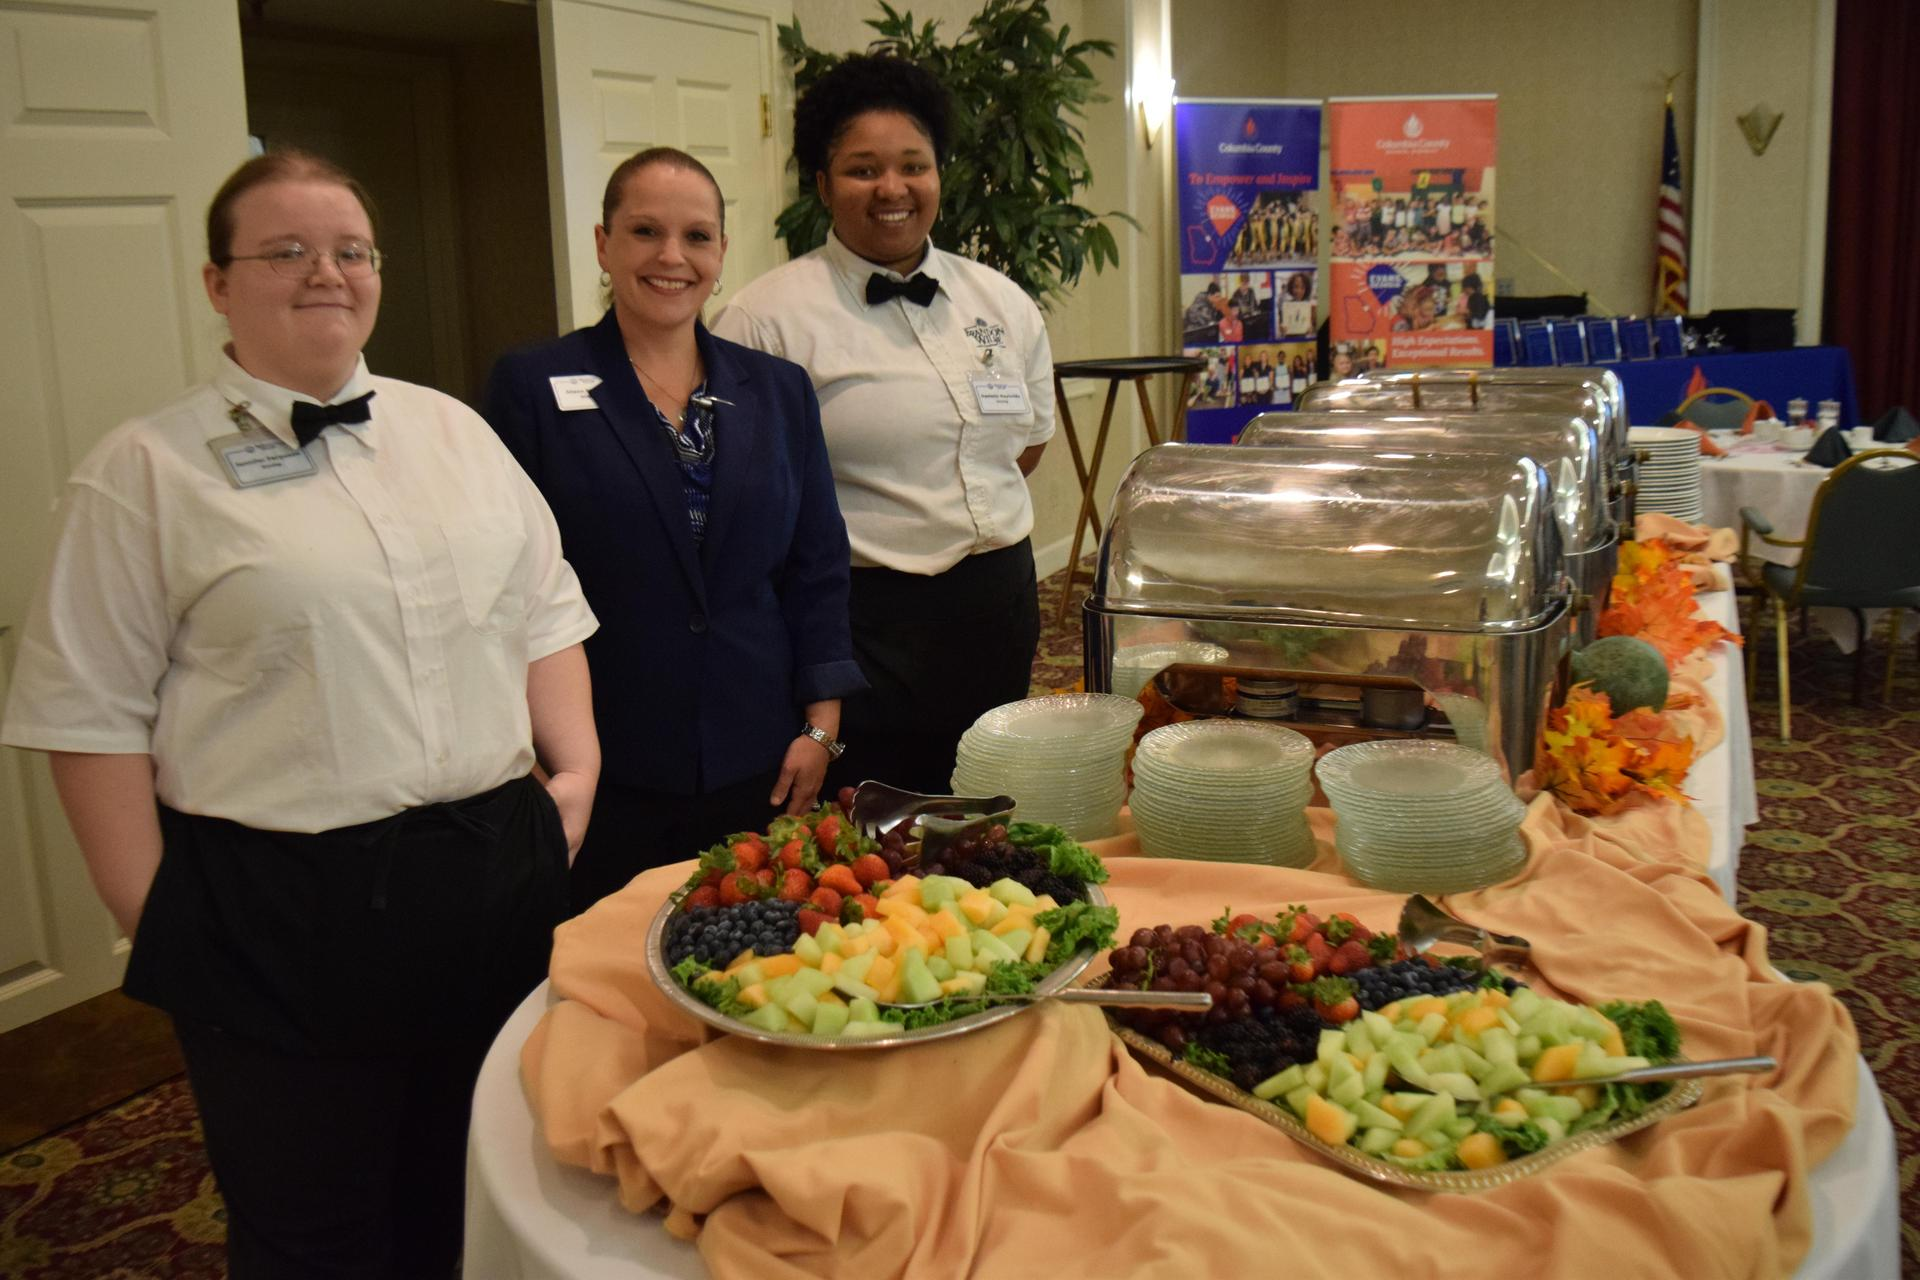 staff smiling next to table of food